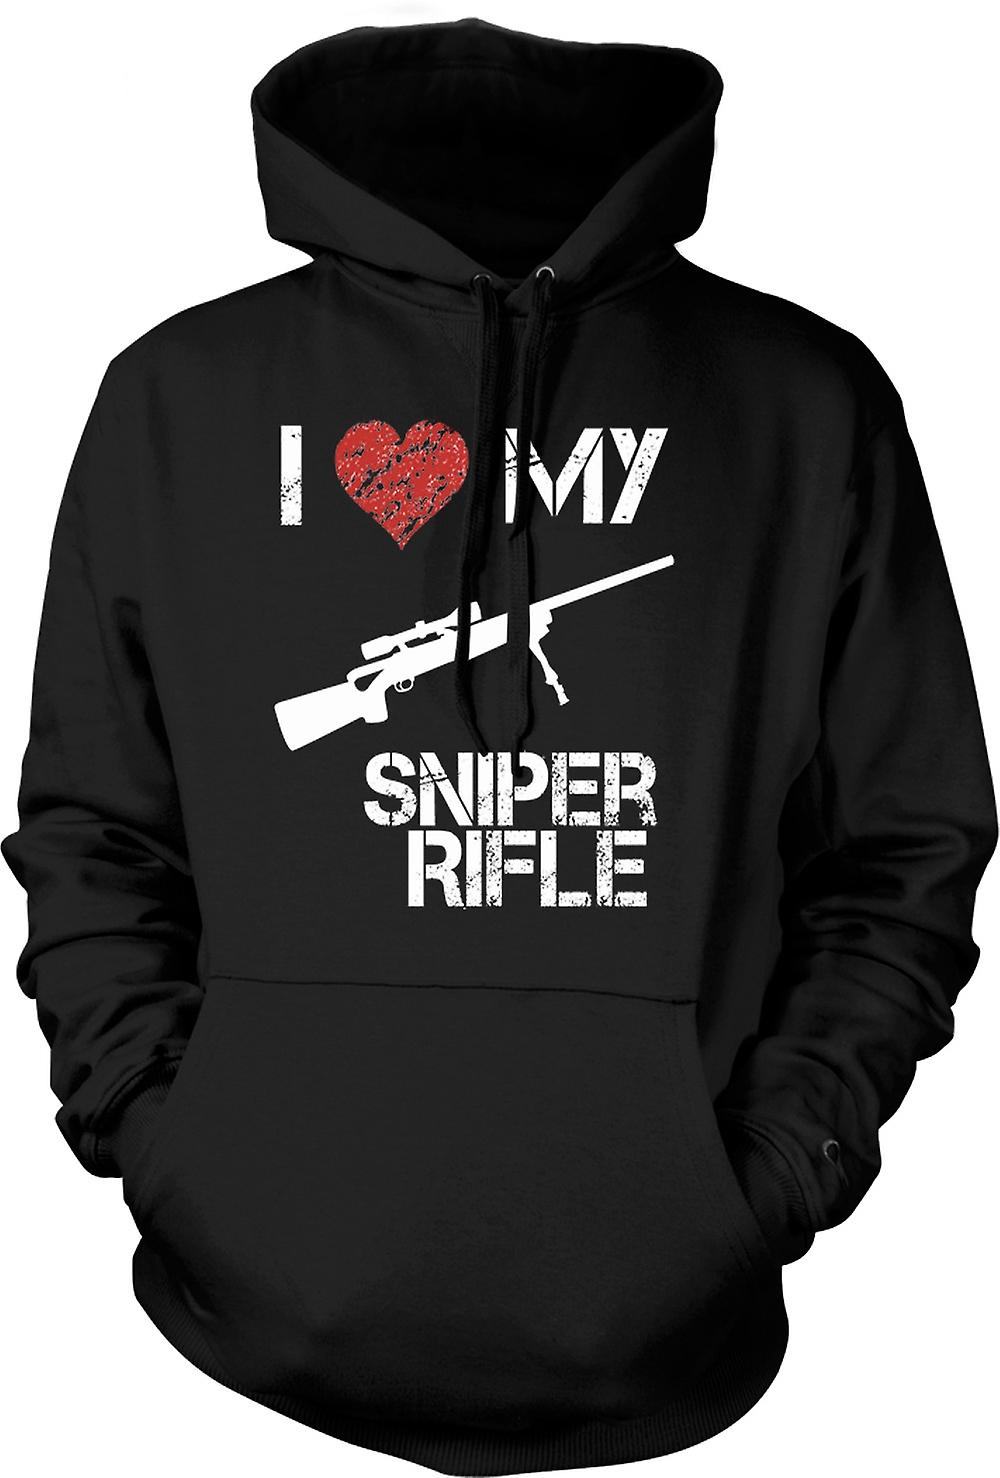 Mens Hoodie - I Love My Sniper Rifle